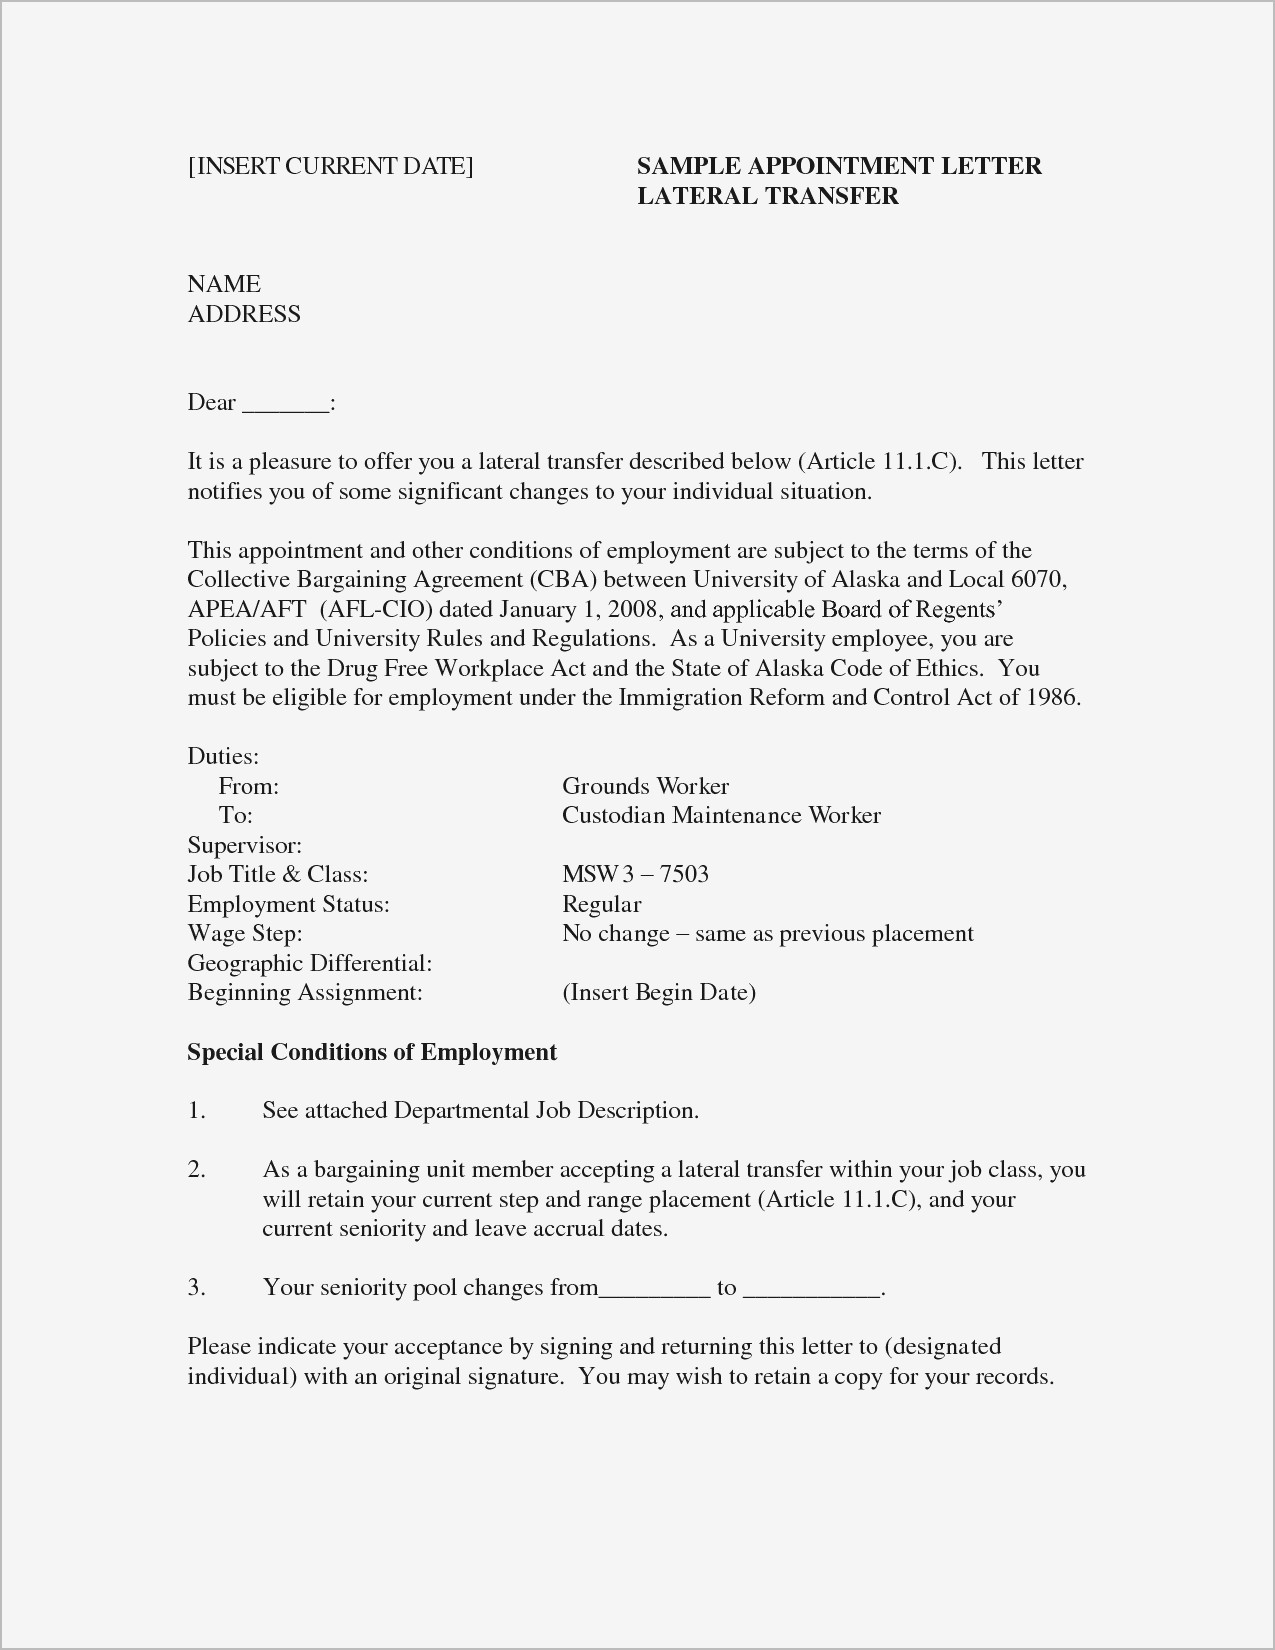 Formal Cover Letter Template - formal Fer Letter Inspirational Job Fer Letter Template Us Copy Od